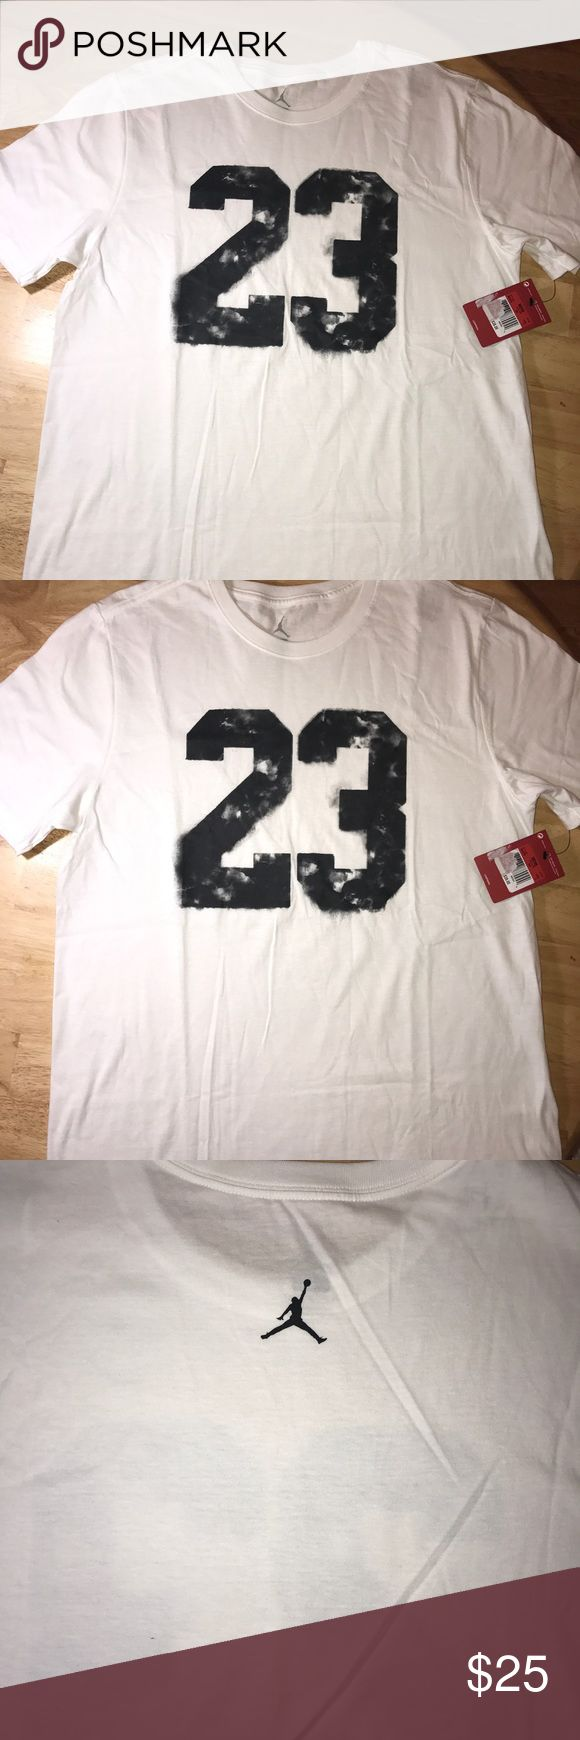 Men's Air Jordan tee Brand new with tags Air Jordan Shirts Tees - Short Sleeve